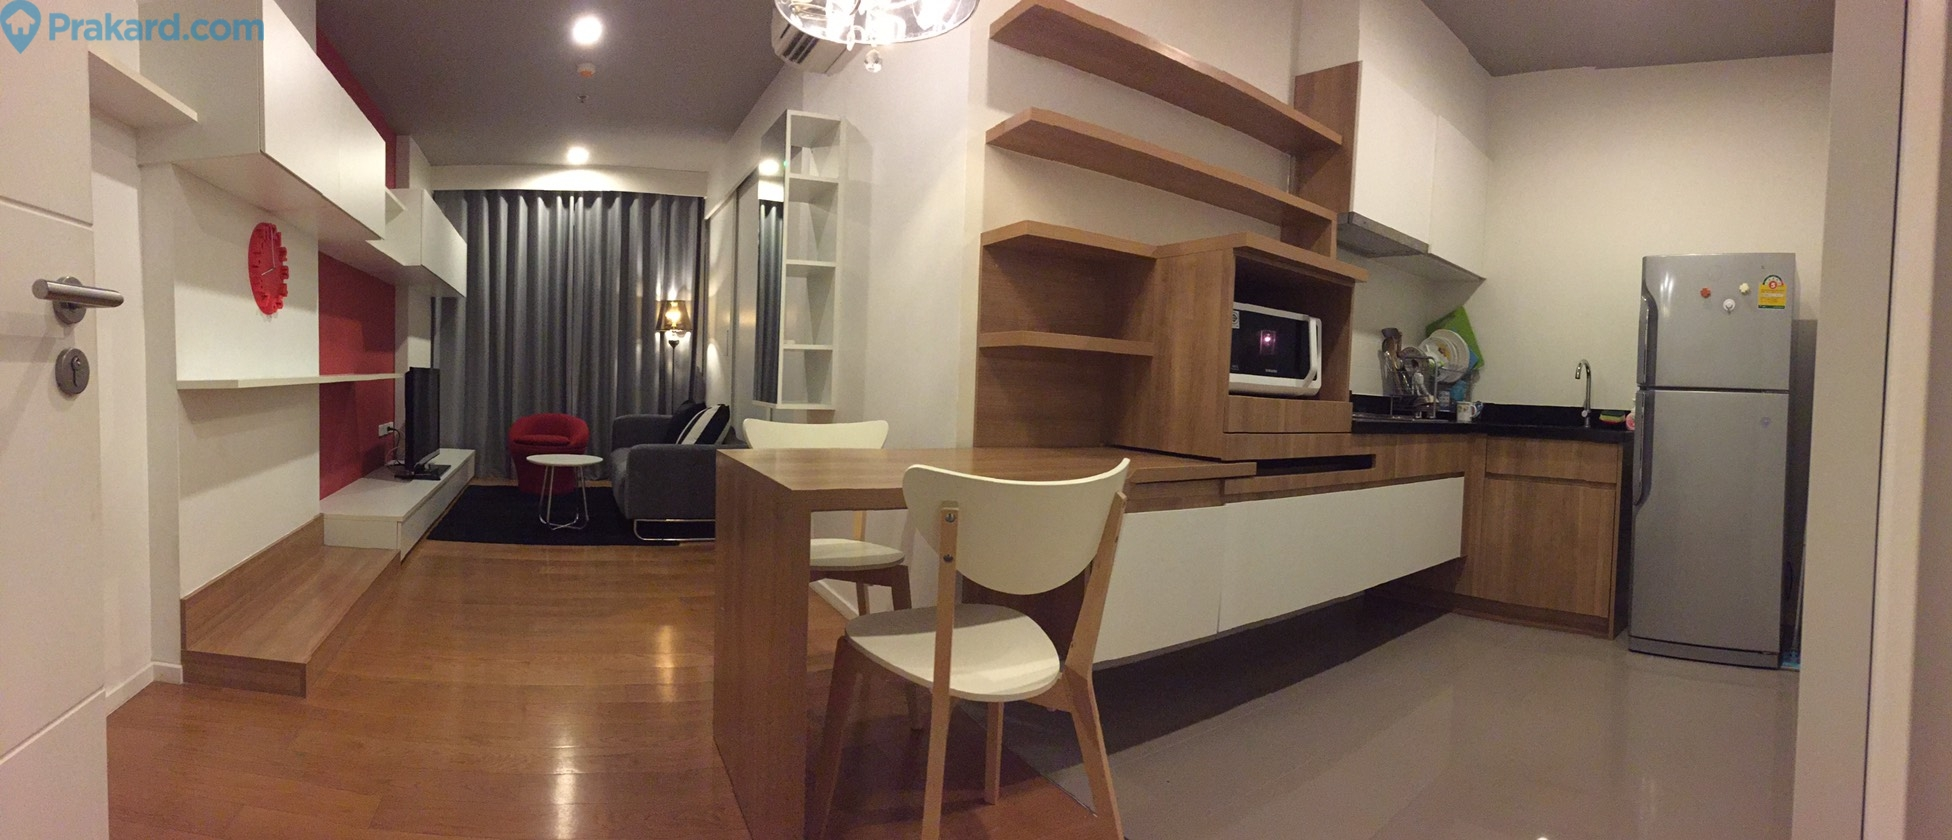 For rent blocs sukhumvit 77 on 15th floor 41 sqm fully for 15th floor